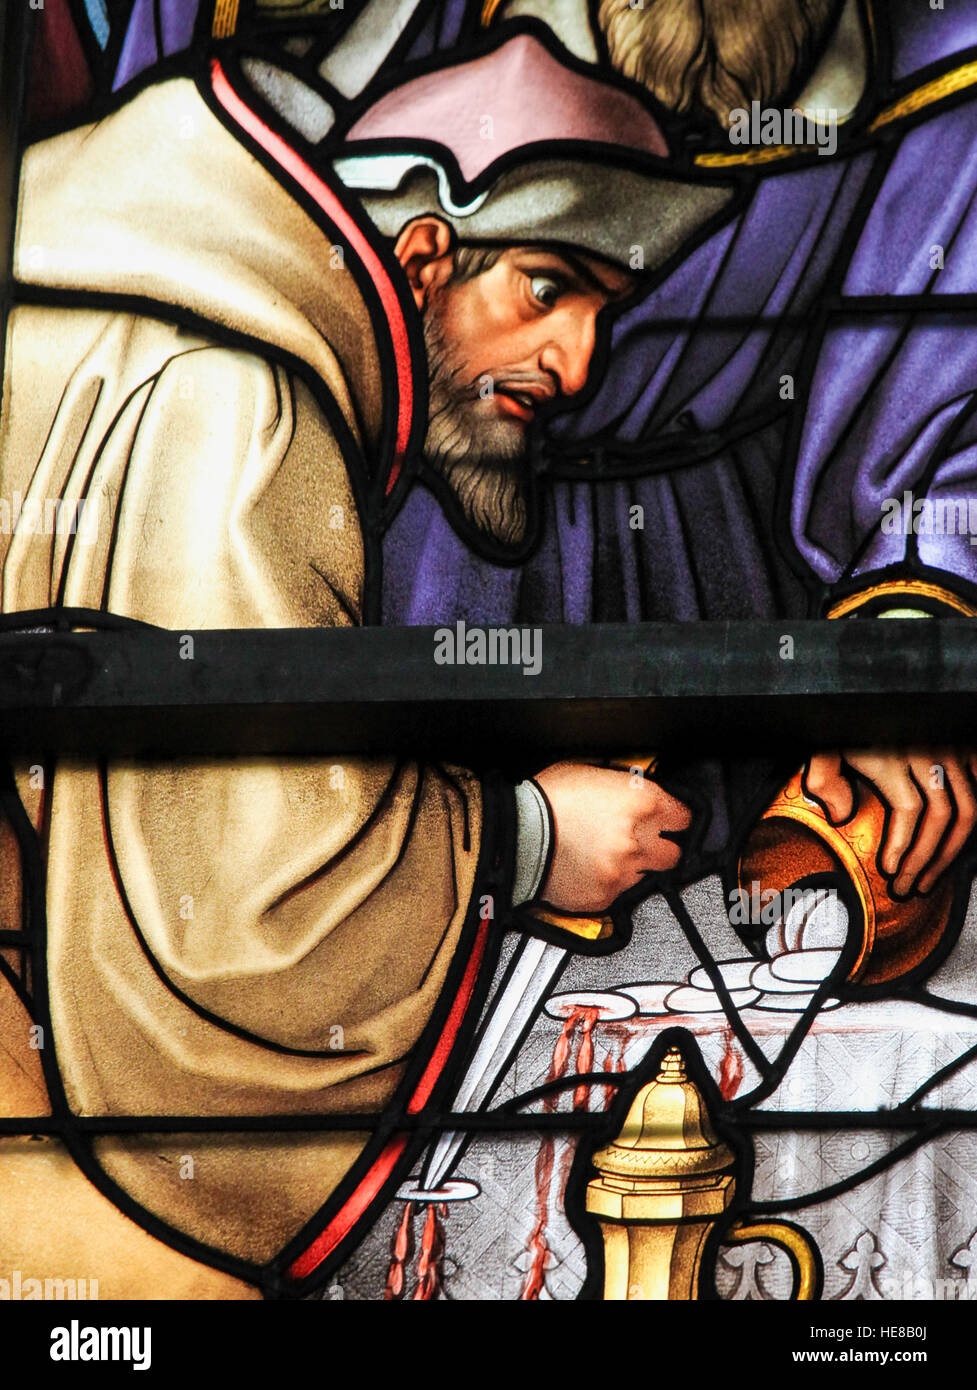 Stained Glass depicting the local legend of a Jew desecrating sacramental bread, in the Cathedral of Brussels, Belgium. - Stock Image